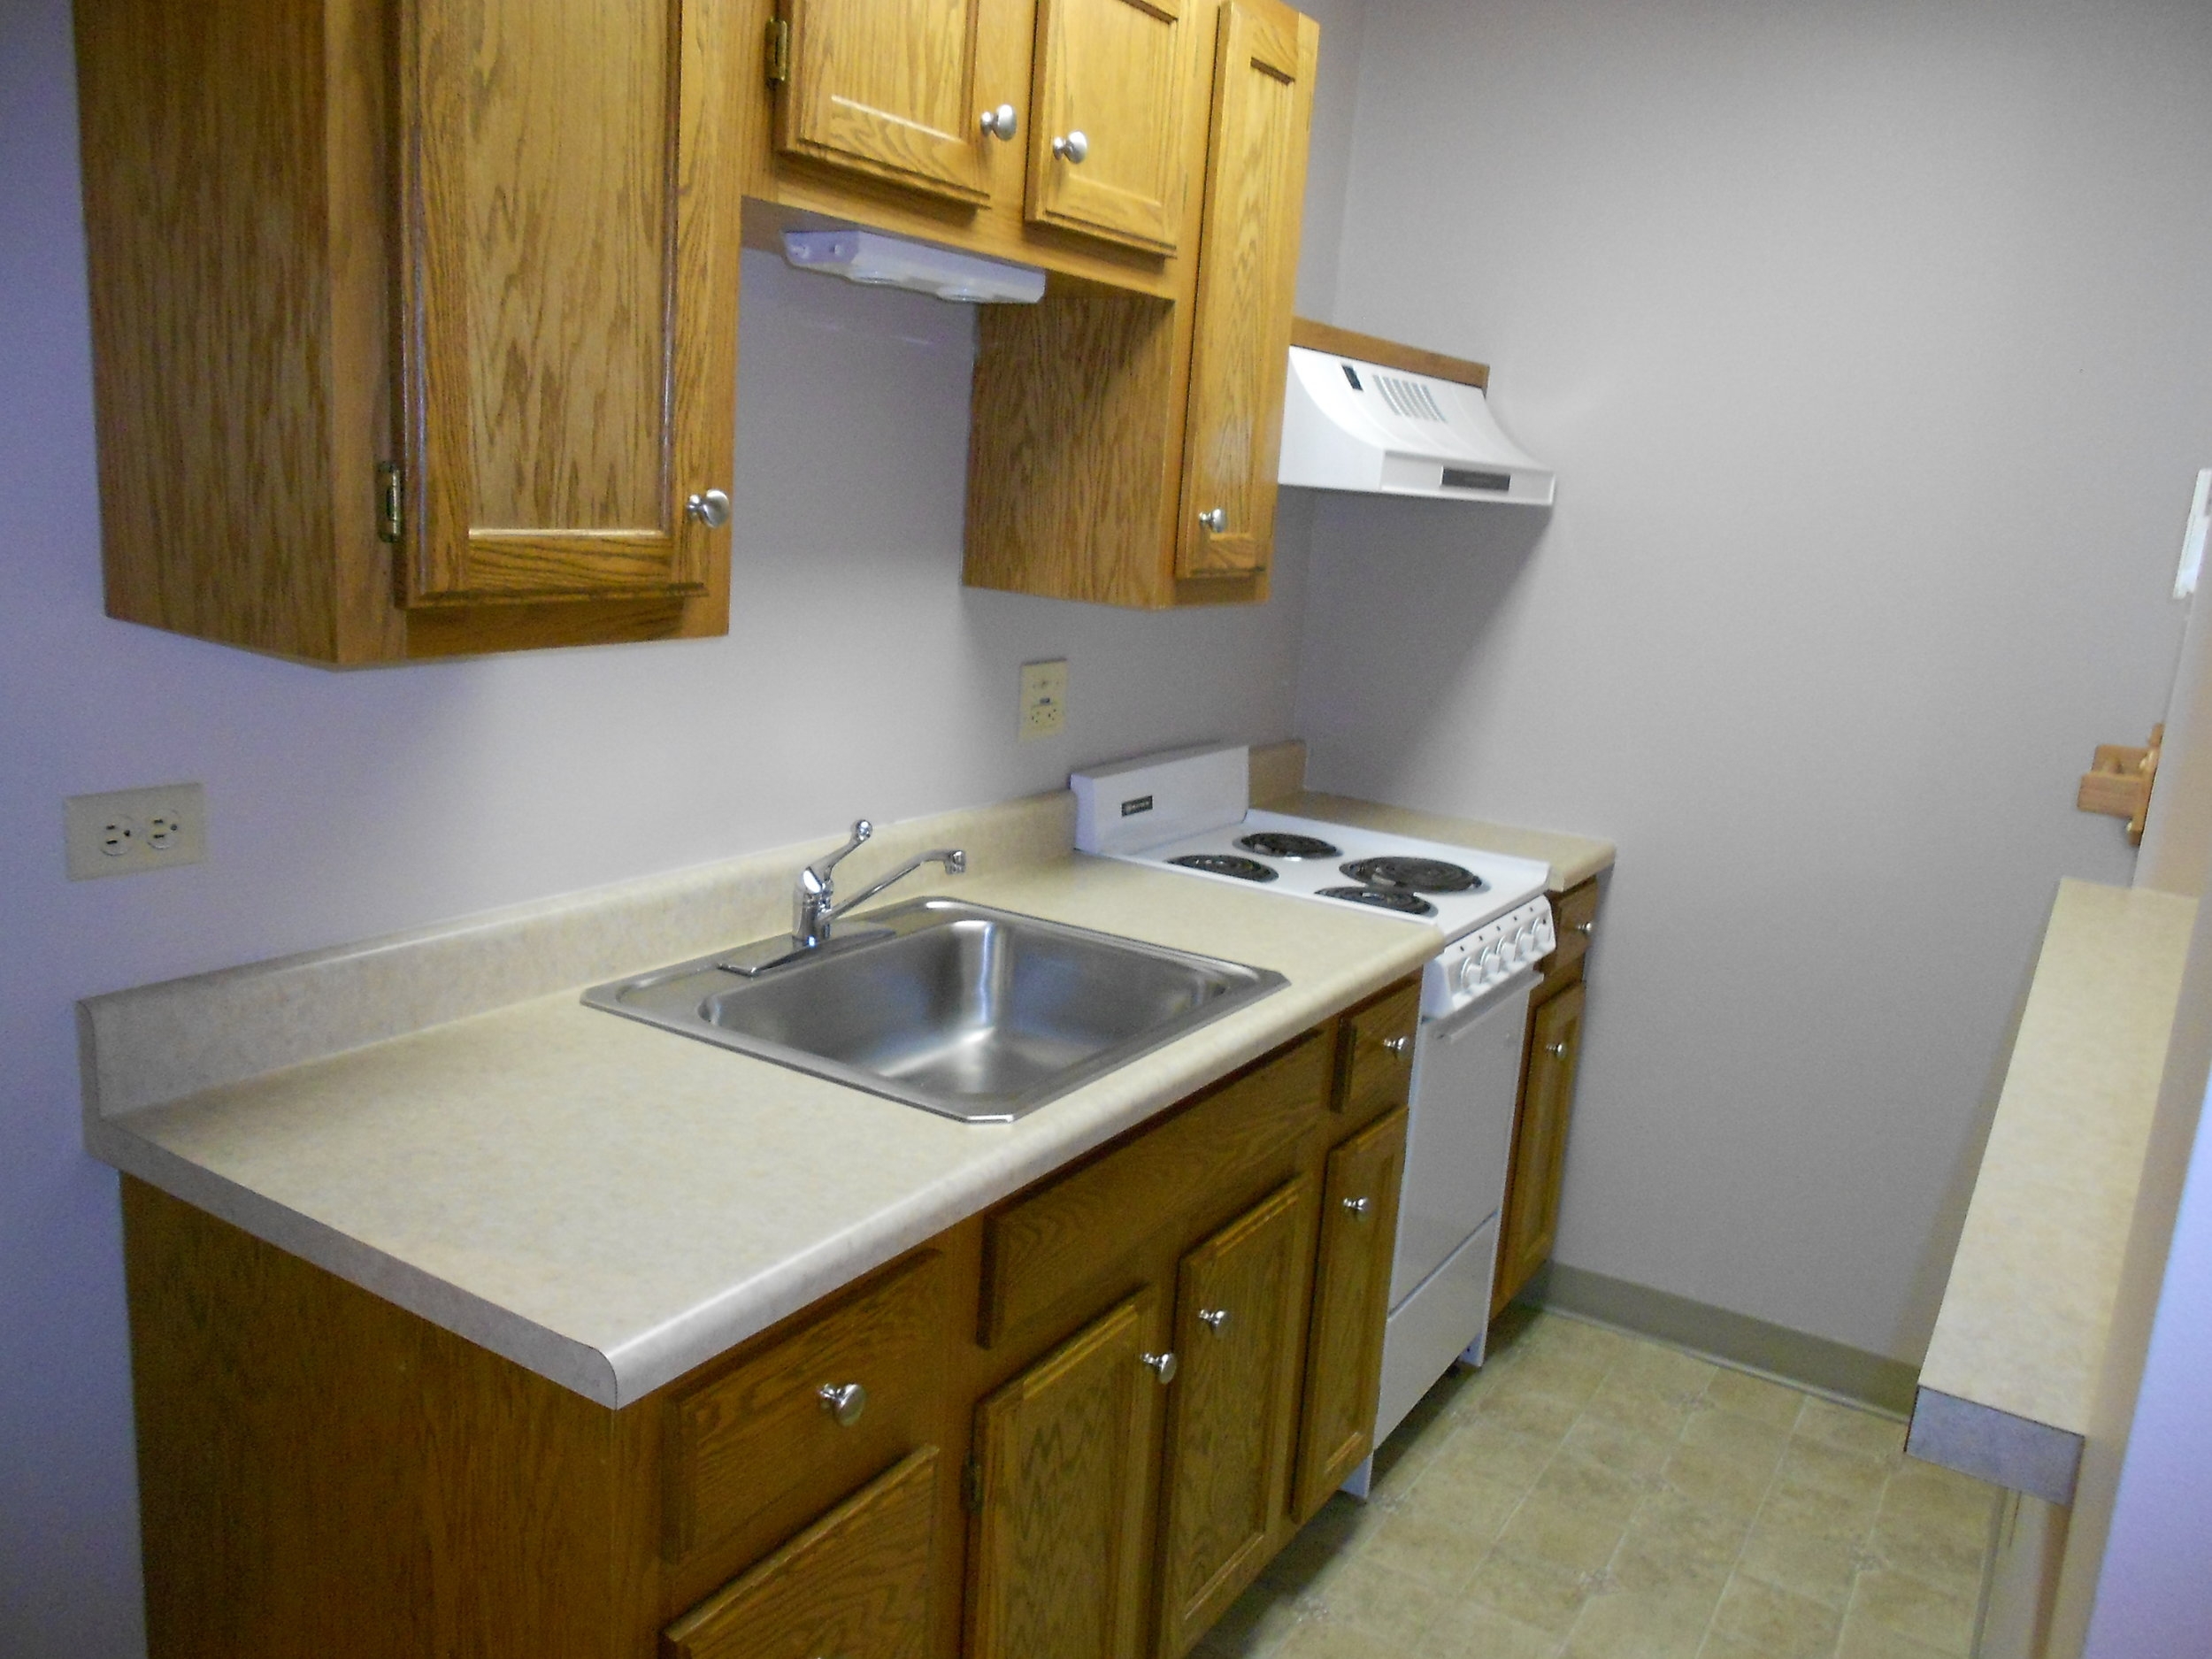 Galley kitchen in one bedroom